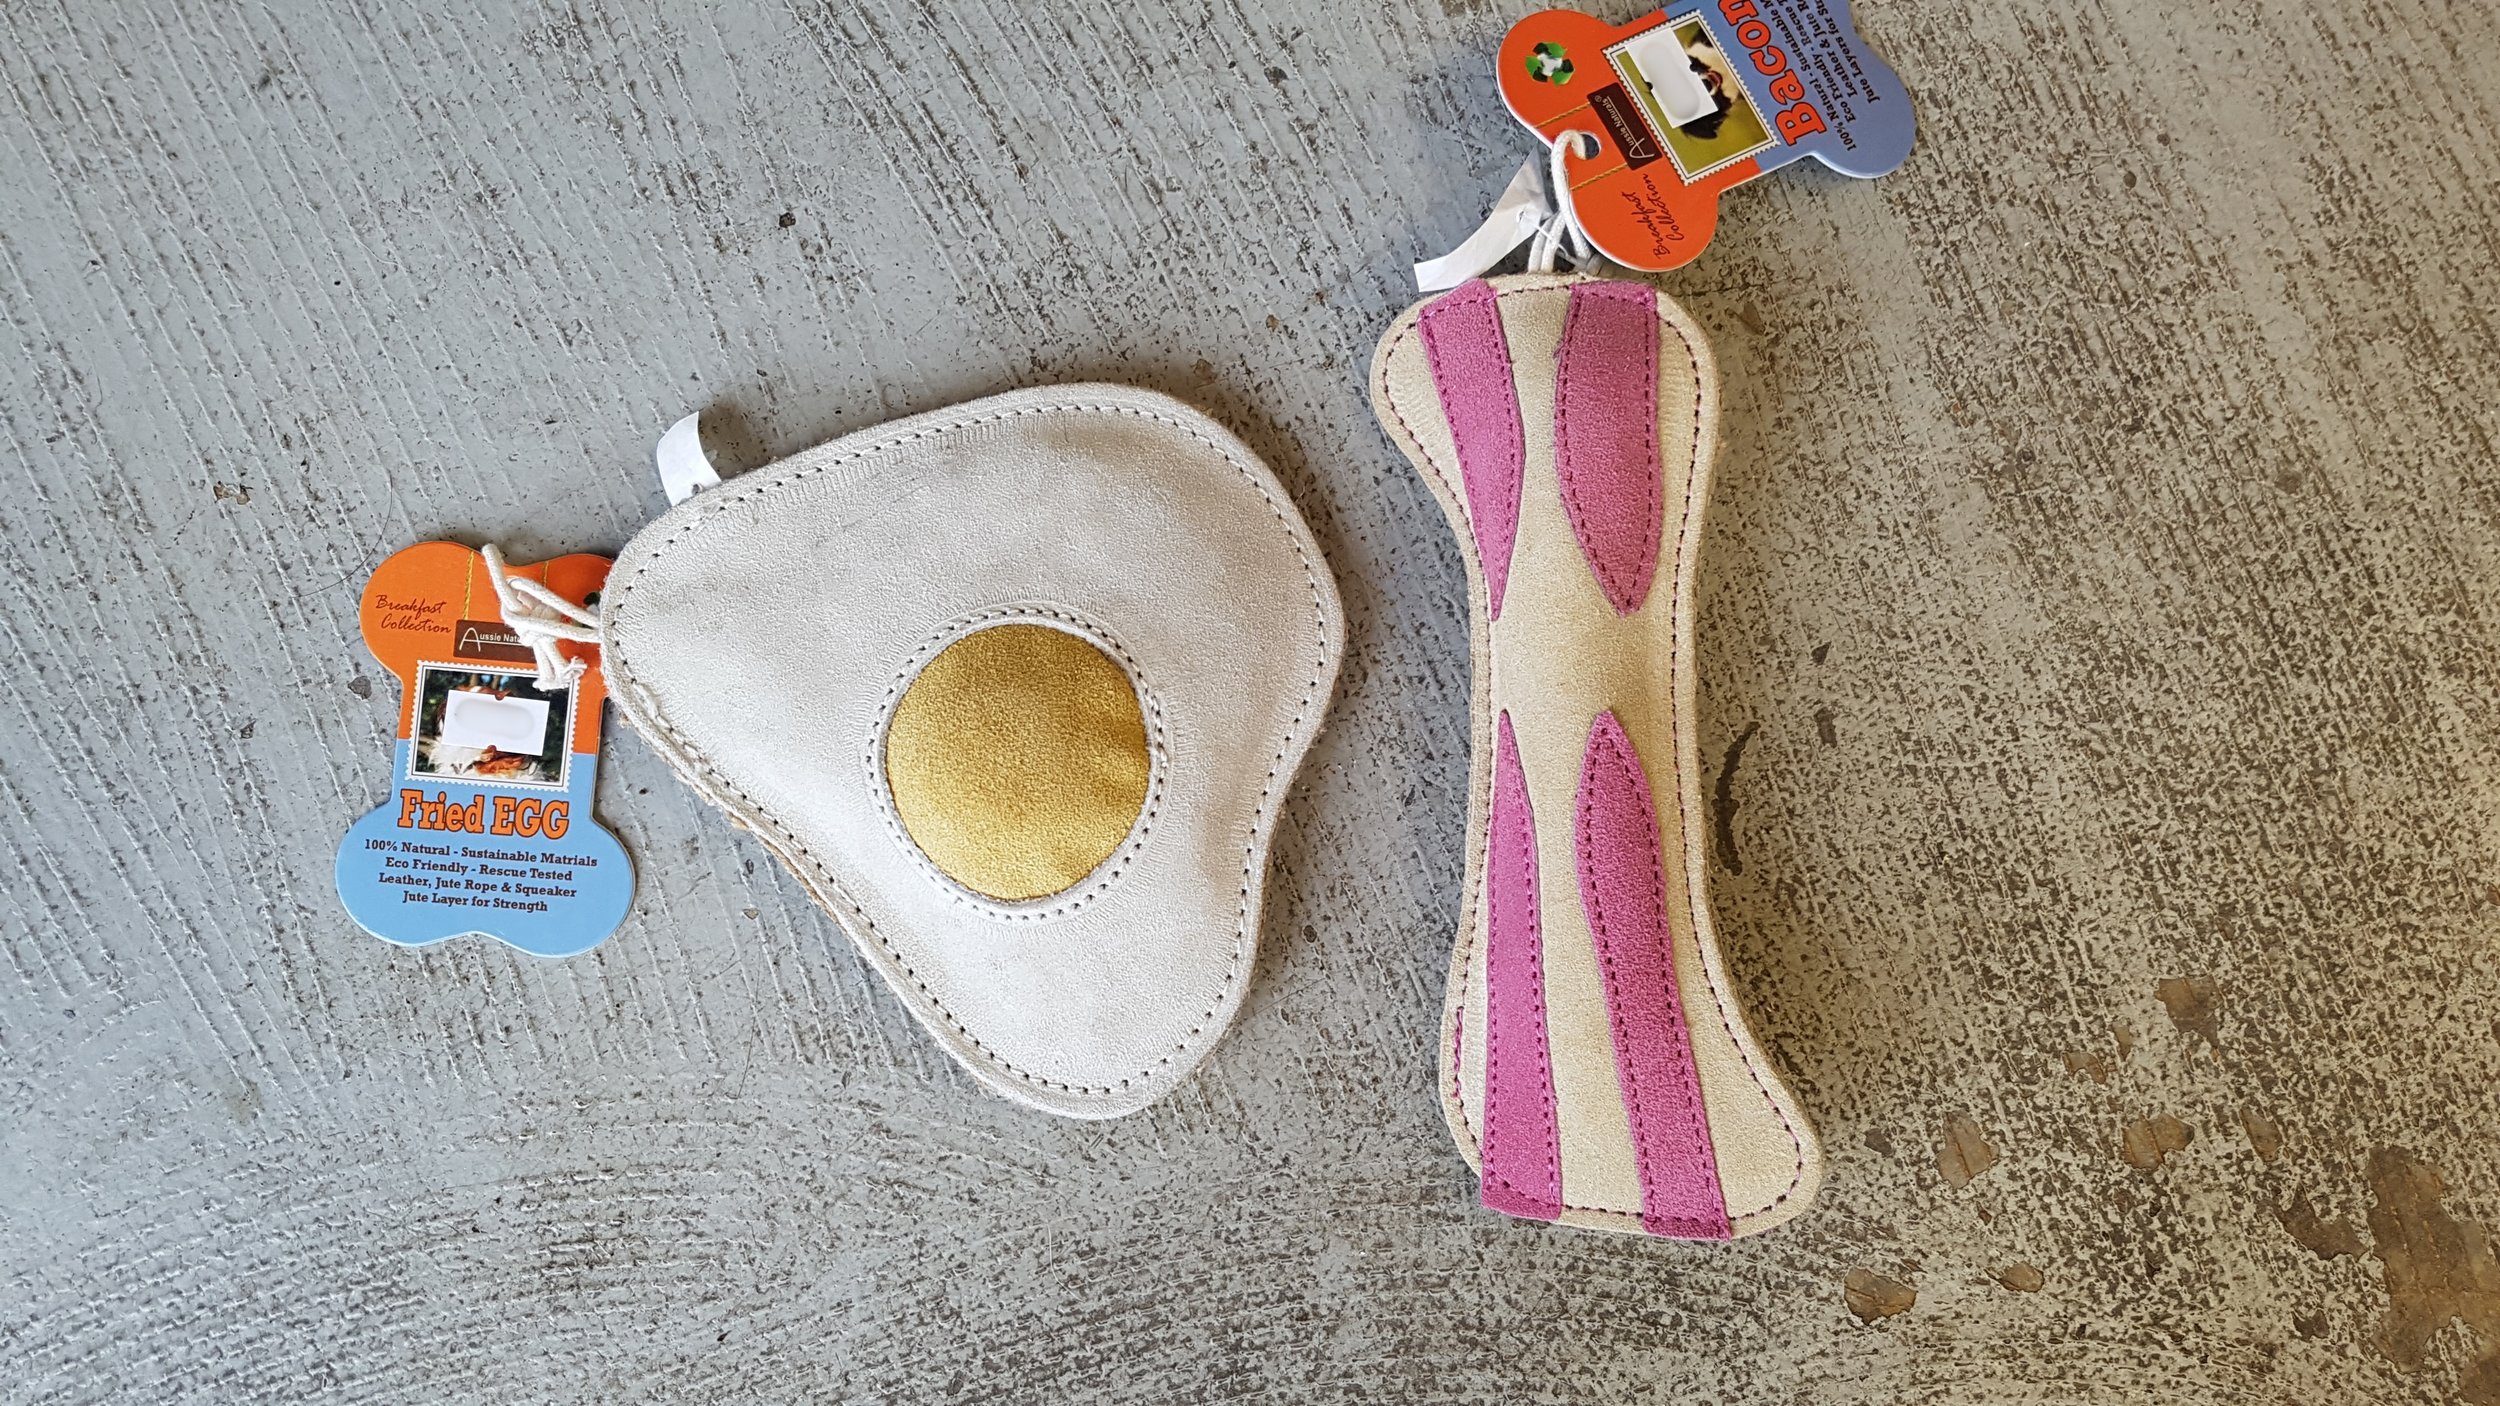 Aussie Naturals' adorable and sustainable breakfast toys!